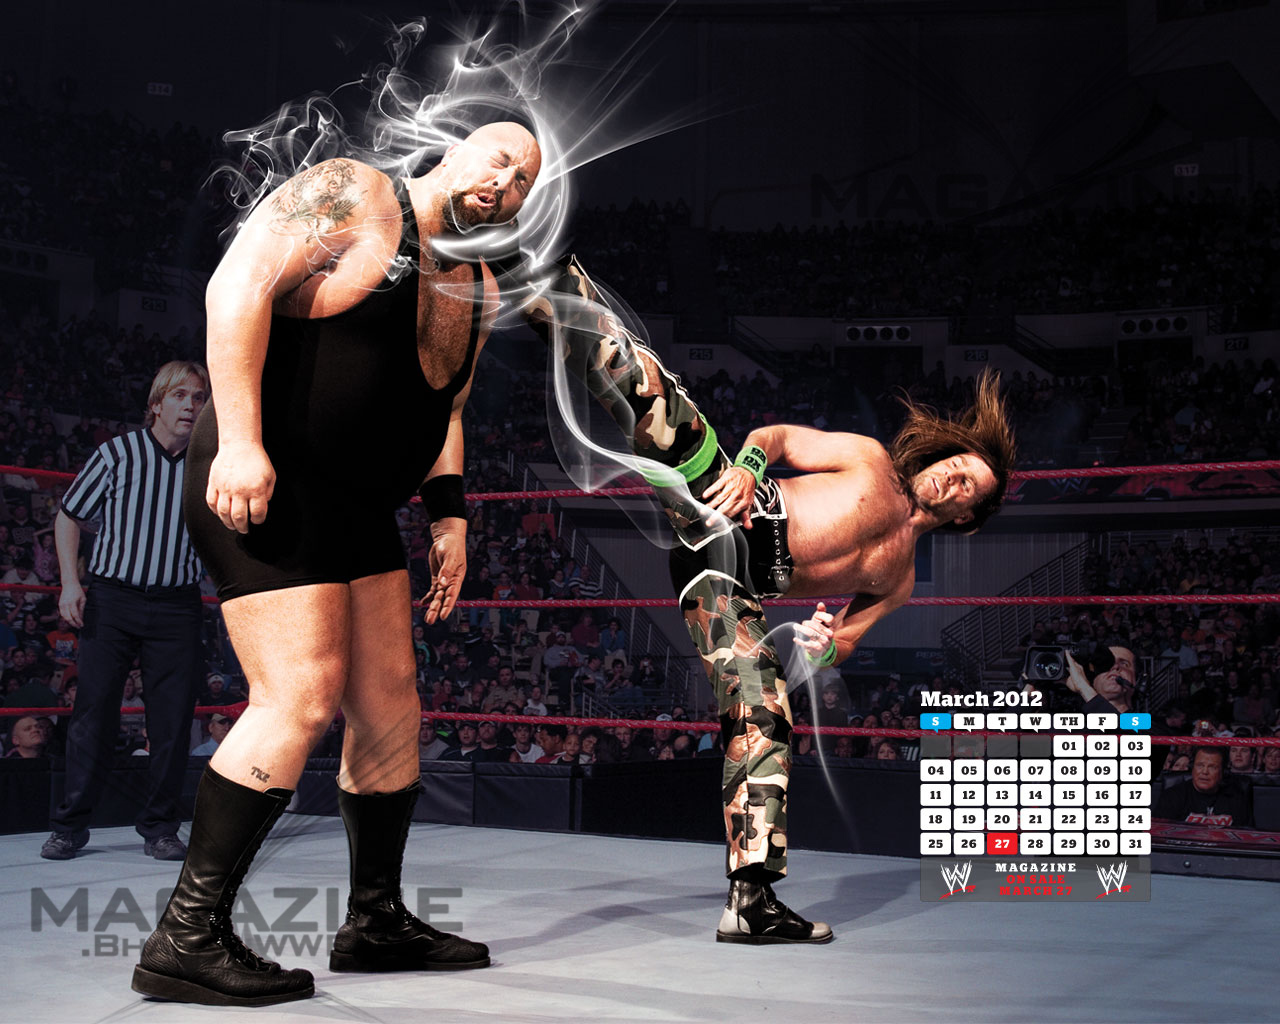 http://1.bp.blogspot.com/-p26kdMAMisU/T1Gv4ppmyGI/AAAAAAAAGZo/7GqE8_Mkbeo/s1600/wwe_march_magazine_official_wallpaper.jpg